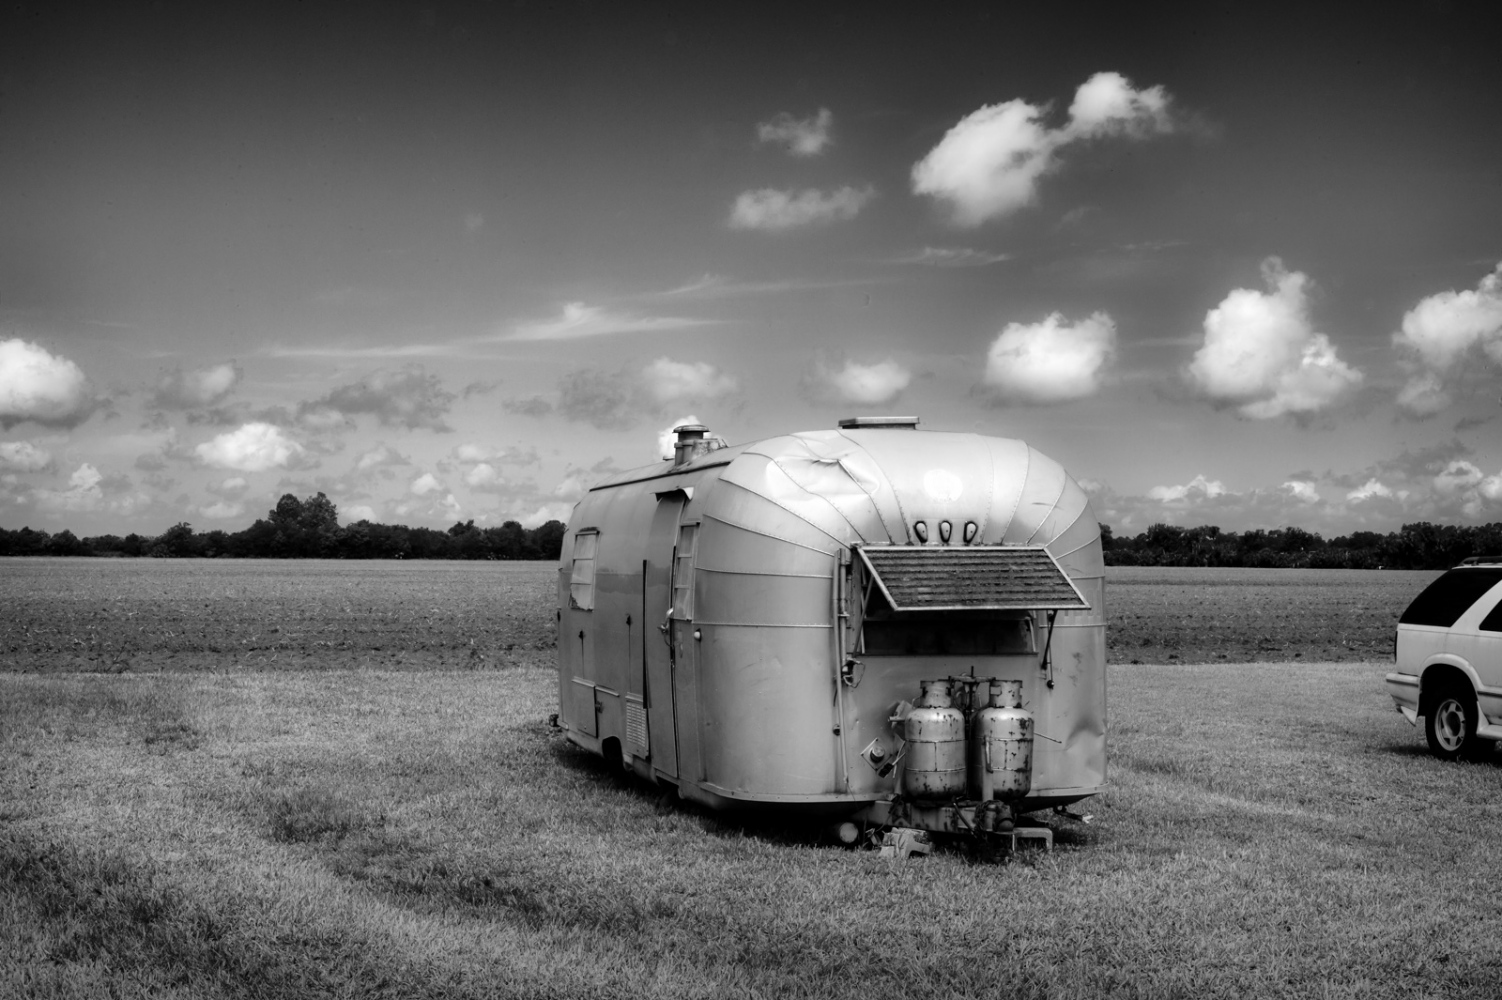 Old Air Stream Abandoned trailer on CR-305, Florida